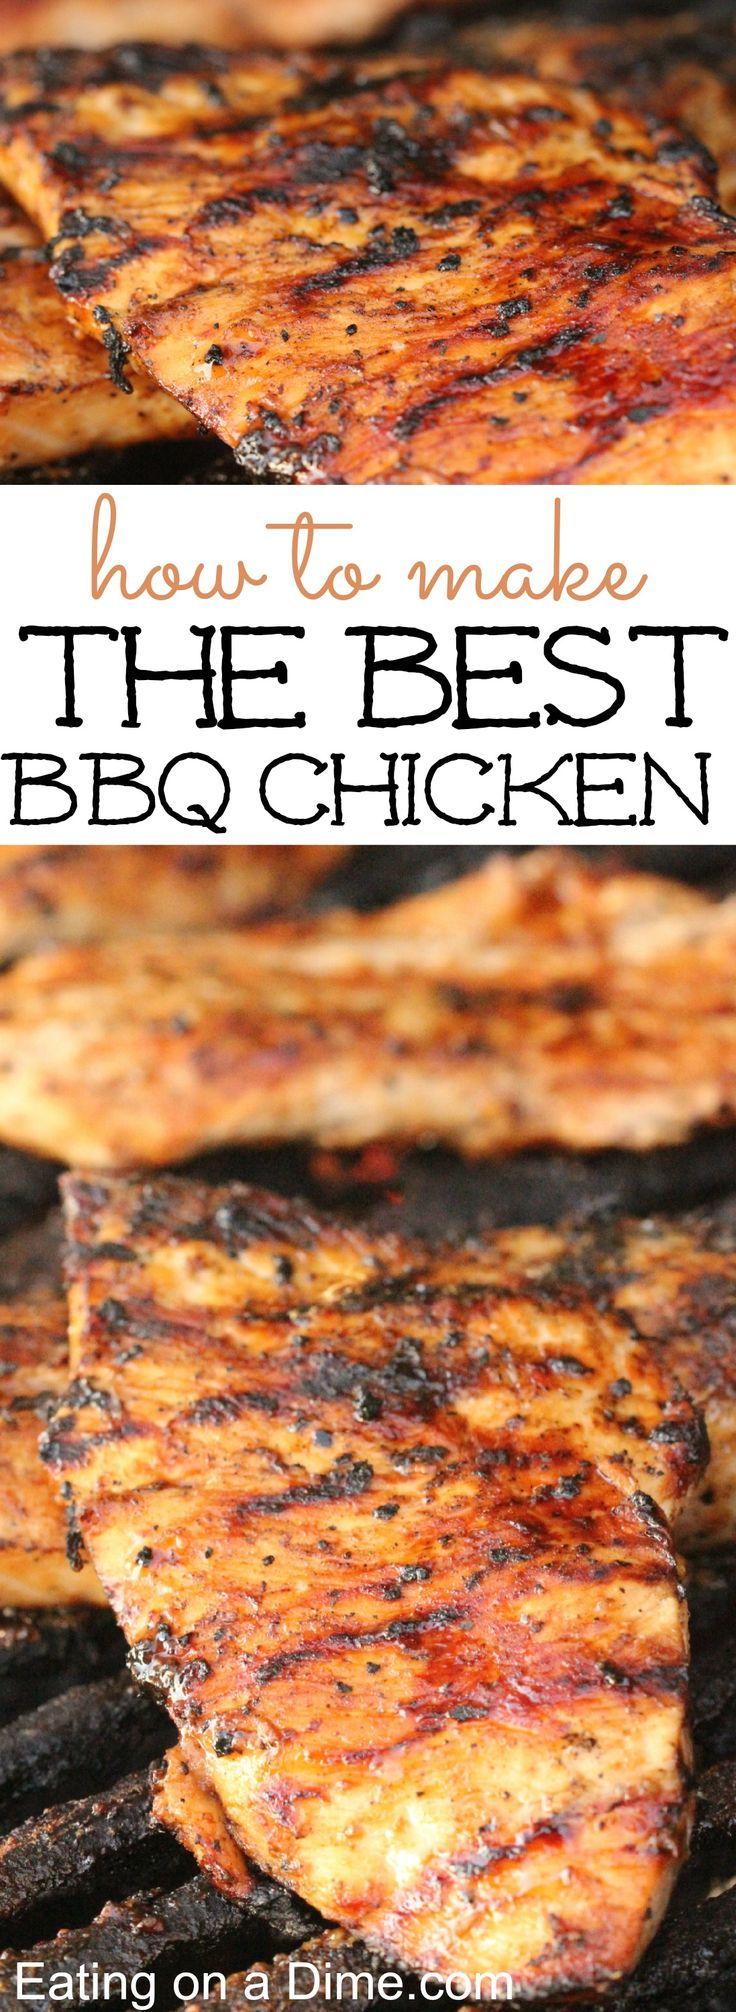 how to make the best bbq chicken recipe